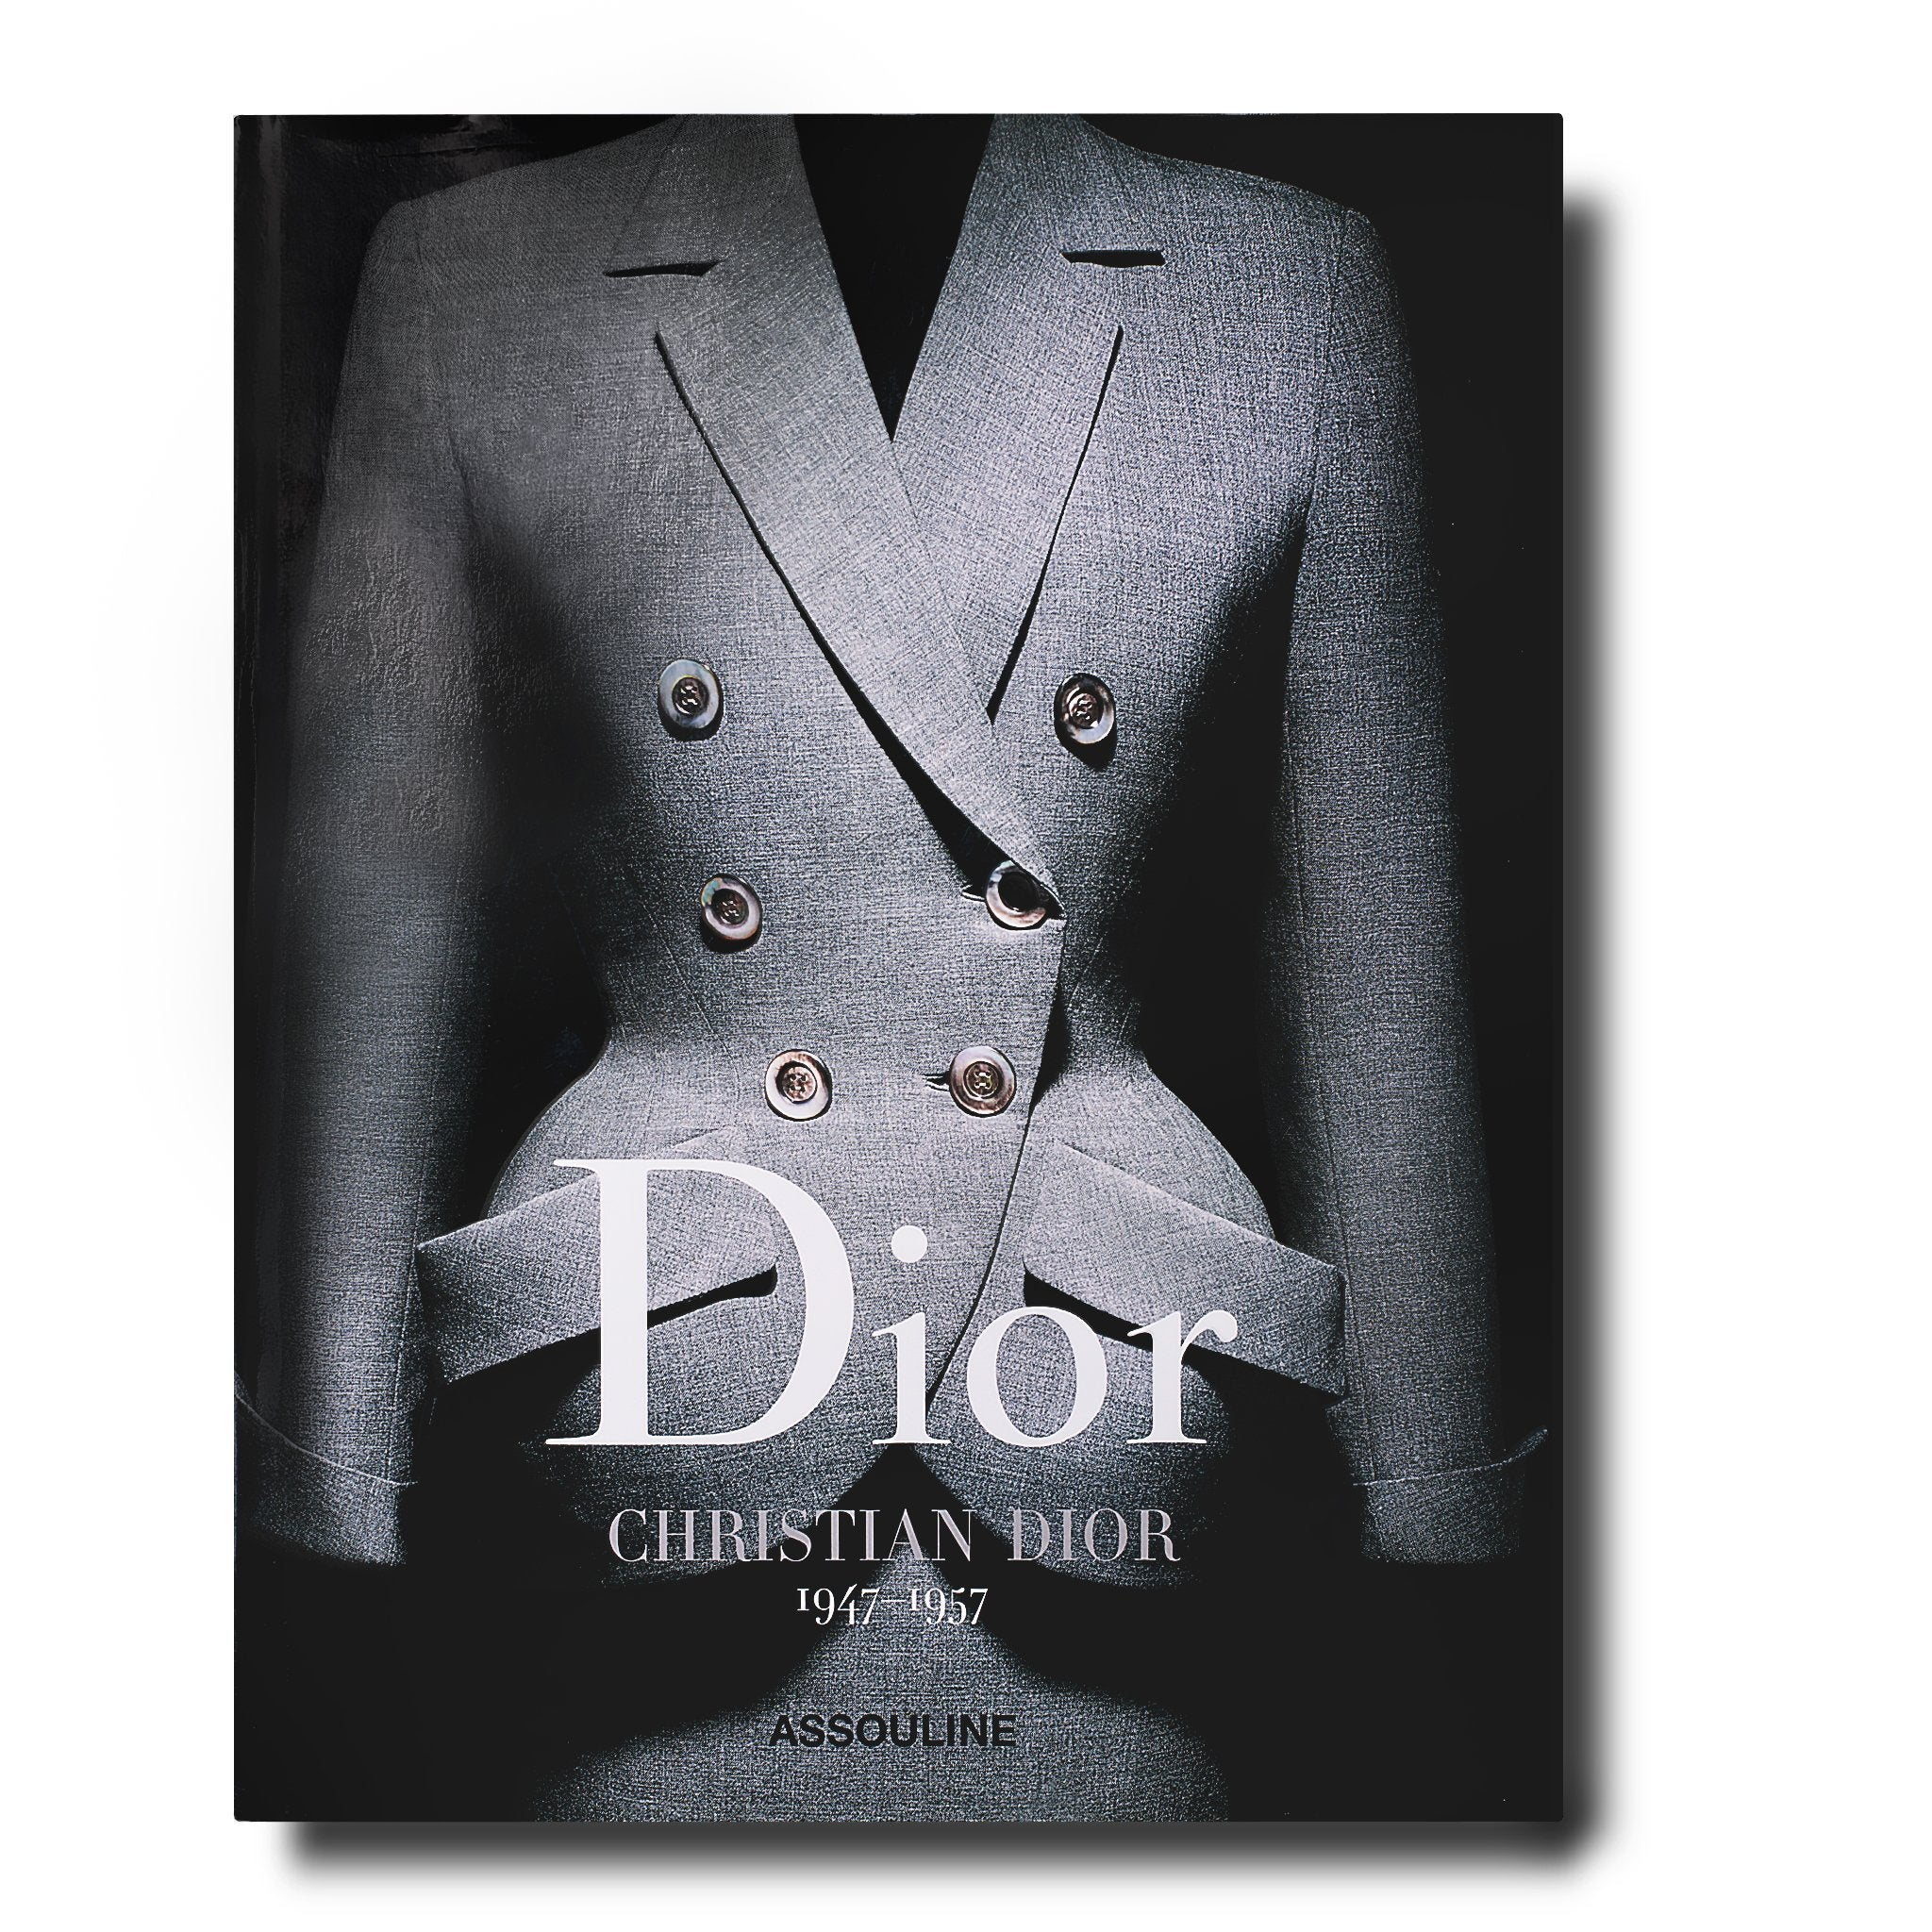 59618f32f13 Dior by Christian Dior book by Olivier Saillard